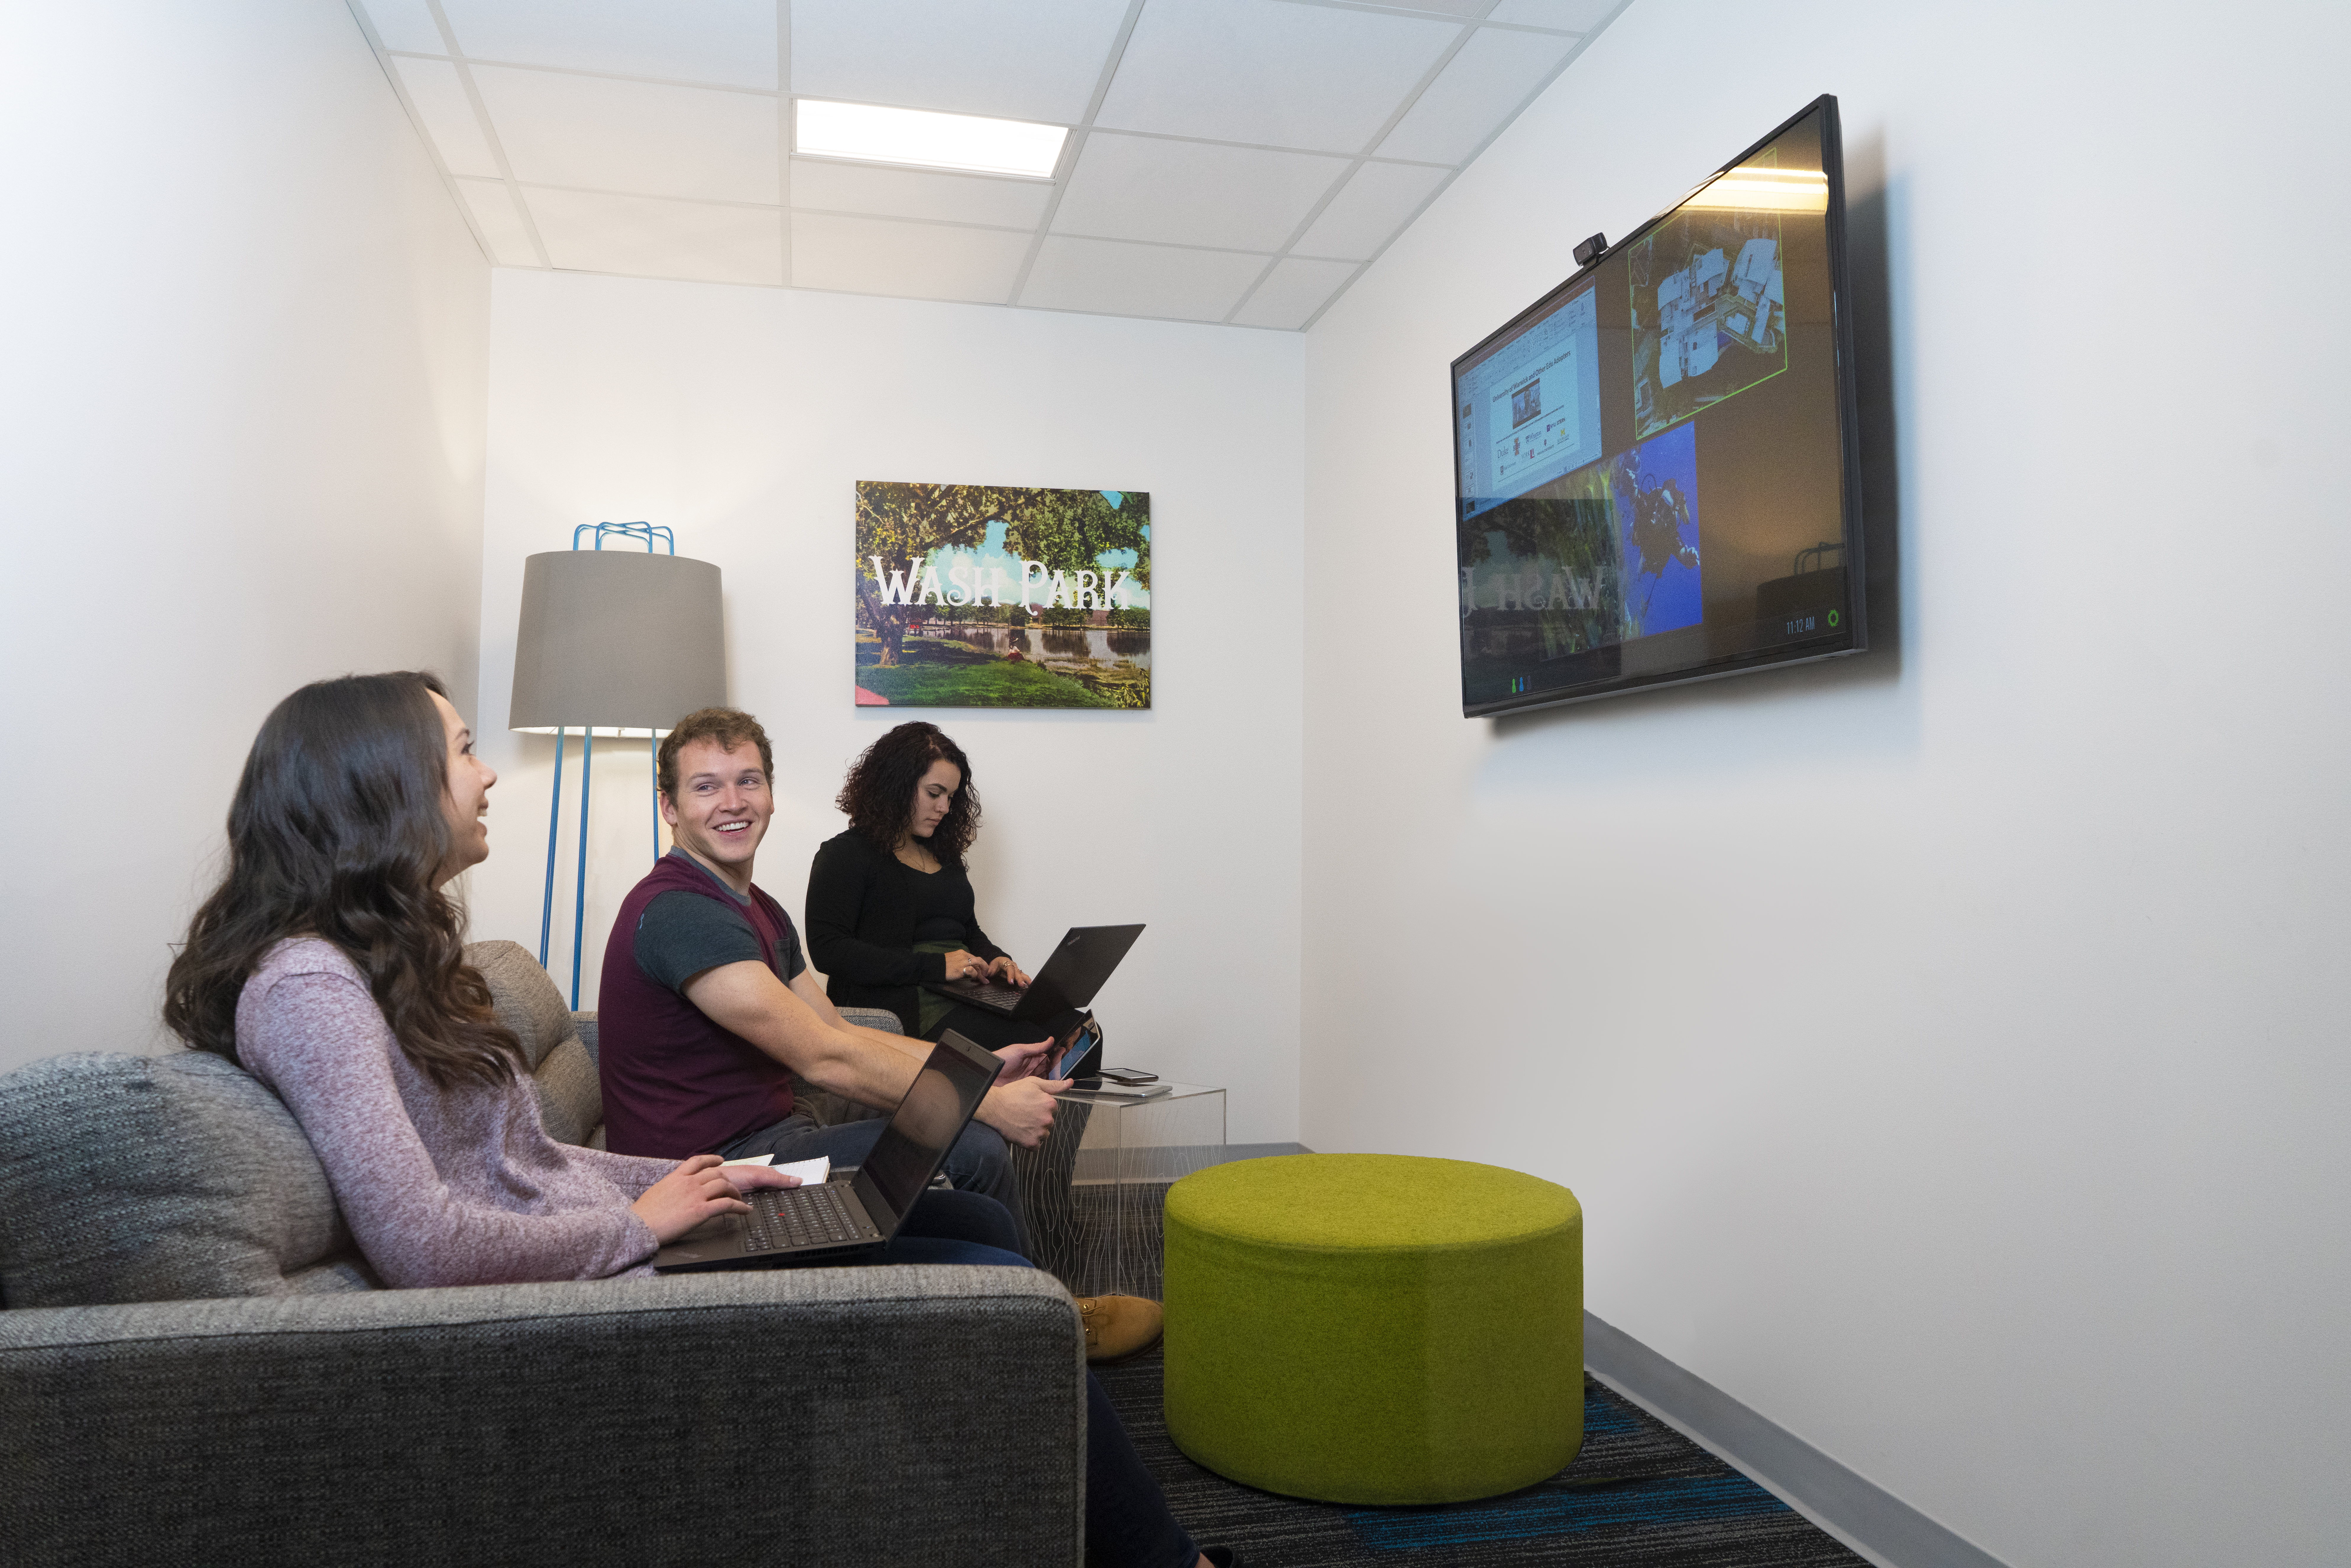 3 Workers using video conference